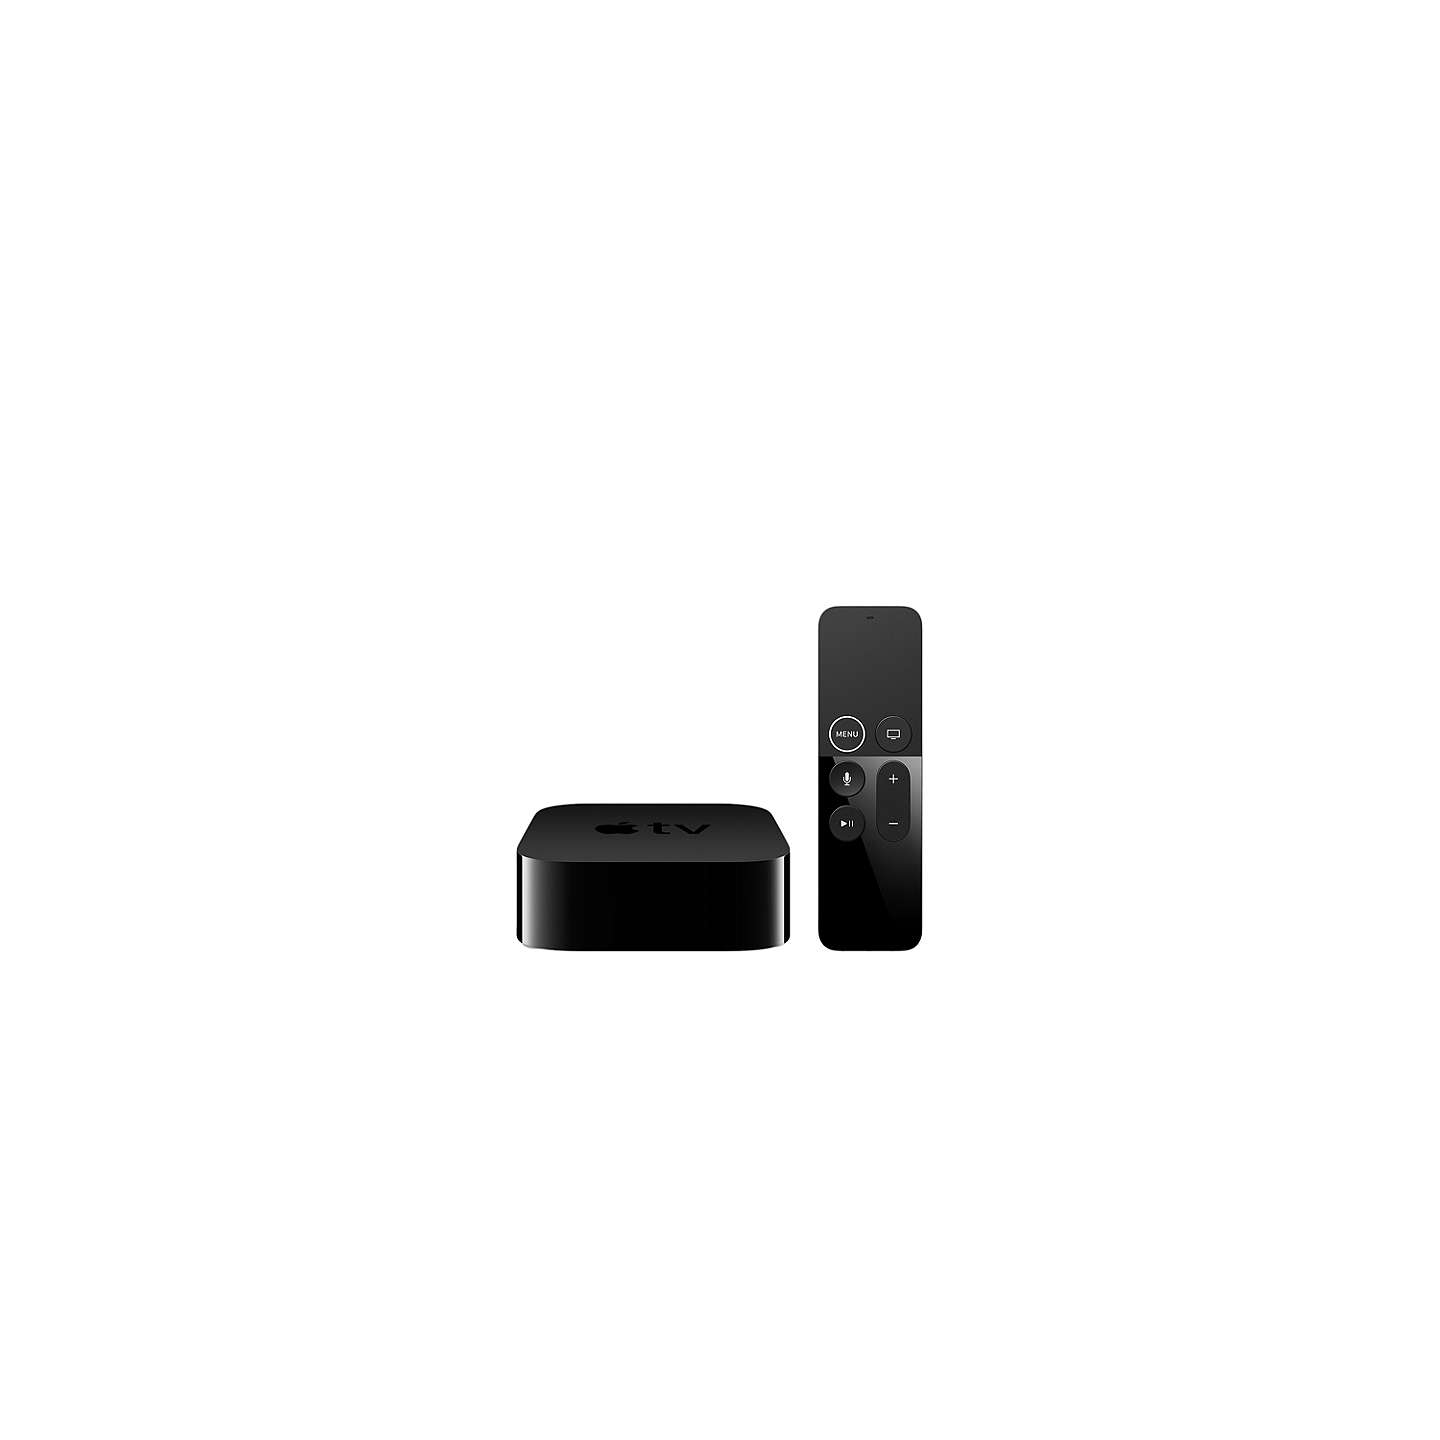 apple tv 4k 64gb at john lewis. Black Bedroom Furniture Sets. Home Design Ideas